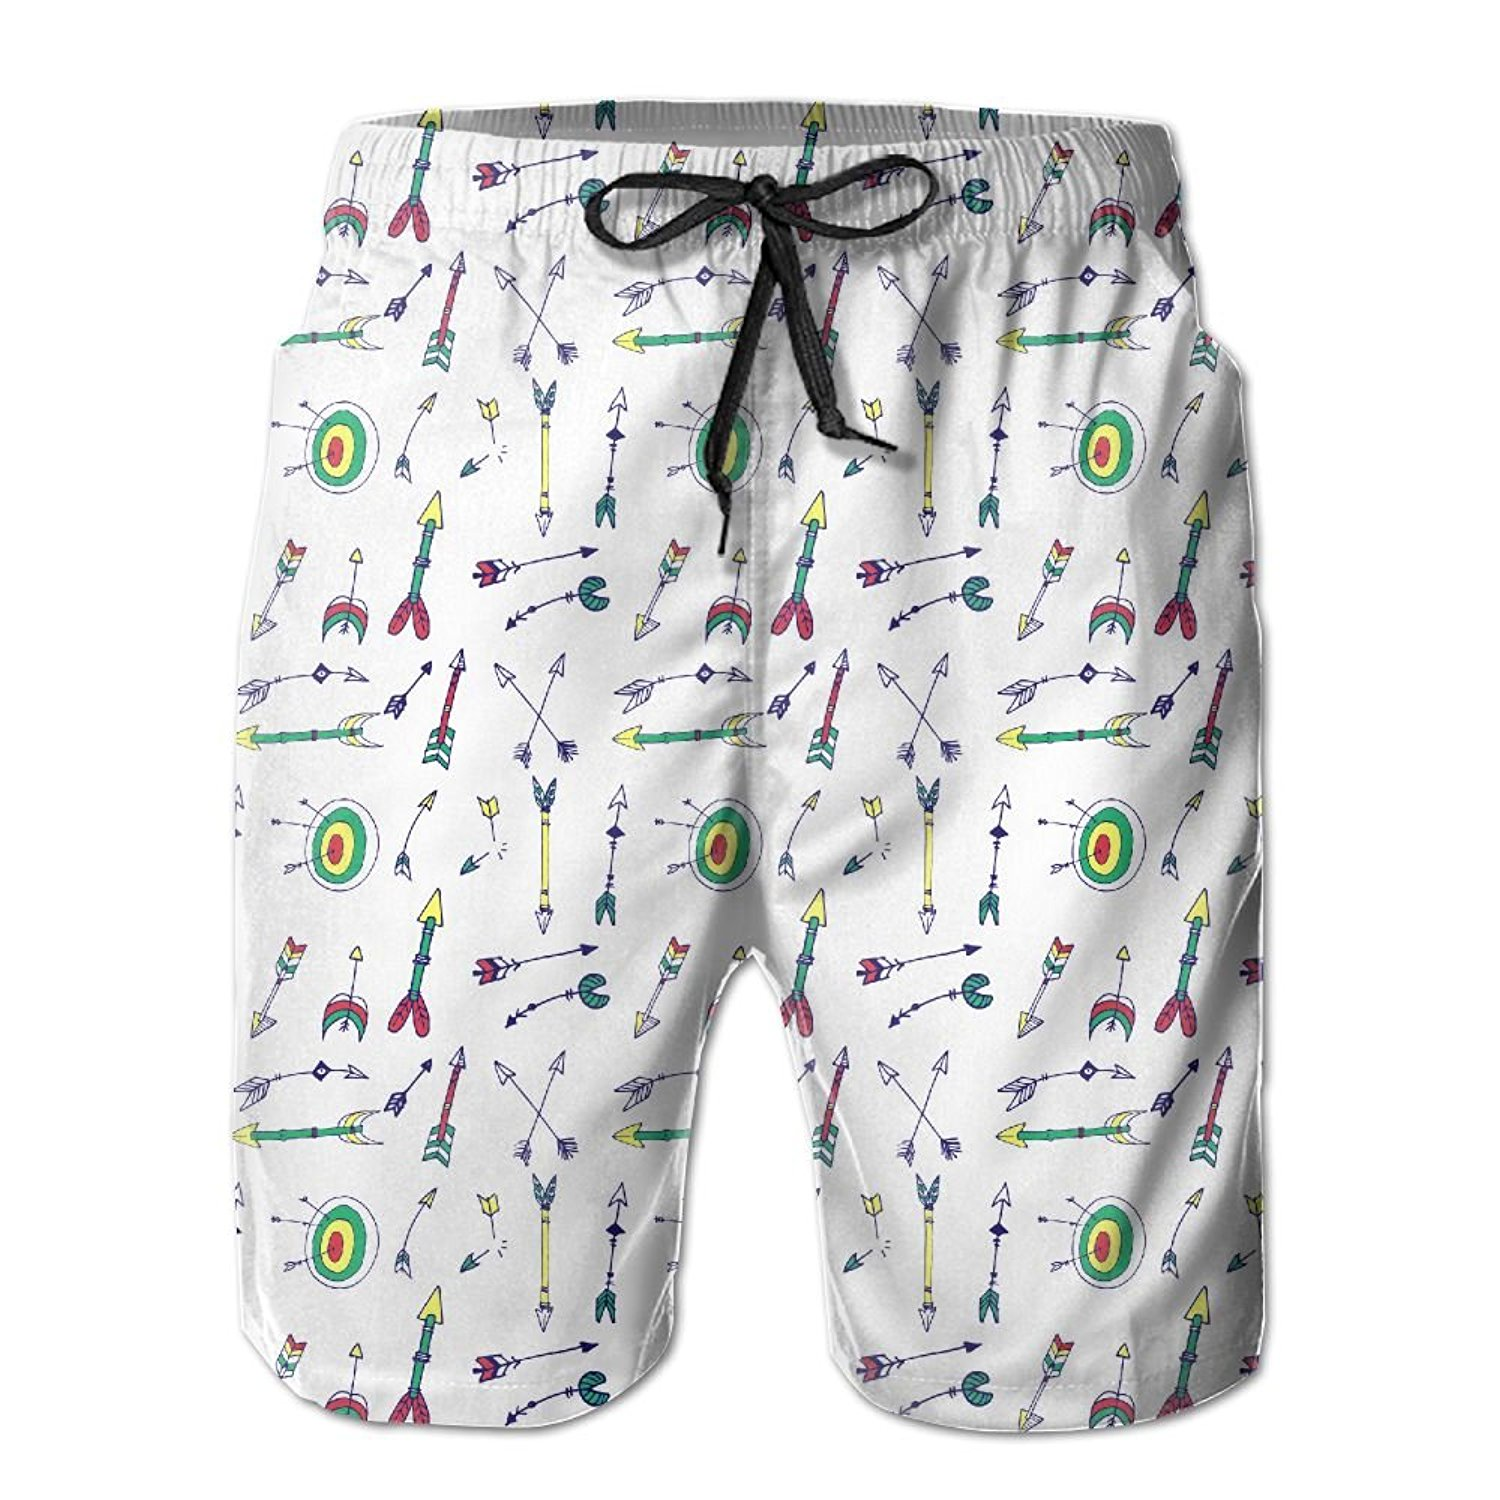 Mens Swim Trunks Quick Dry Bicycle Gang New York Beach Board Shorts Swimming Short with Pockets